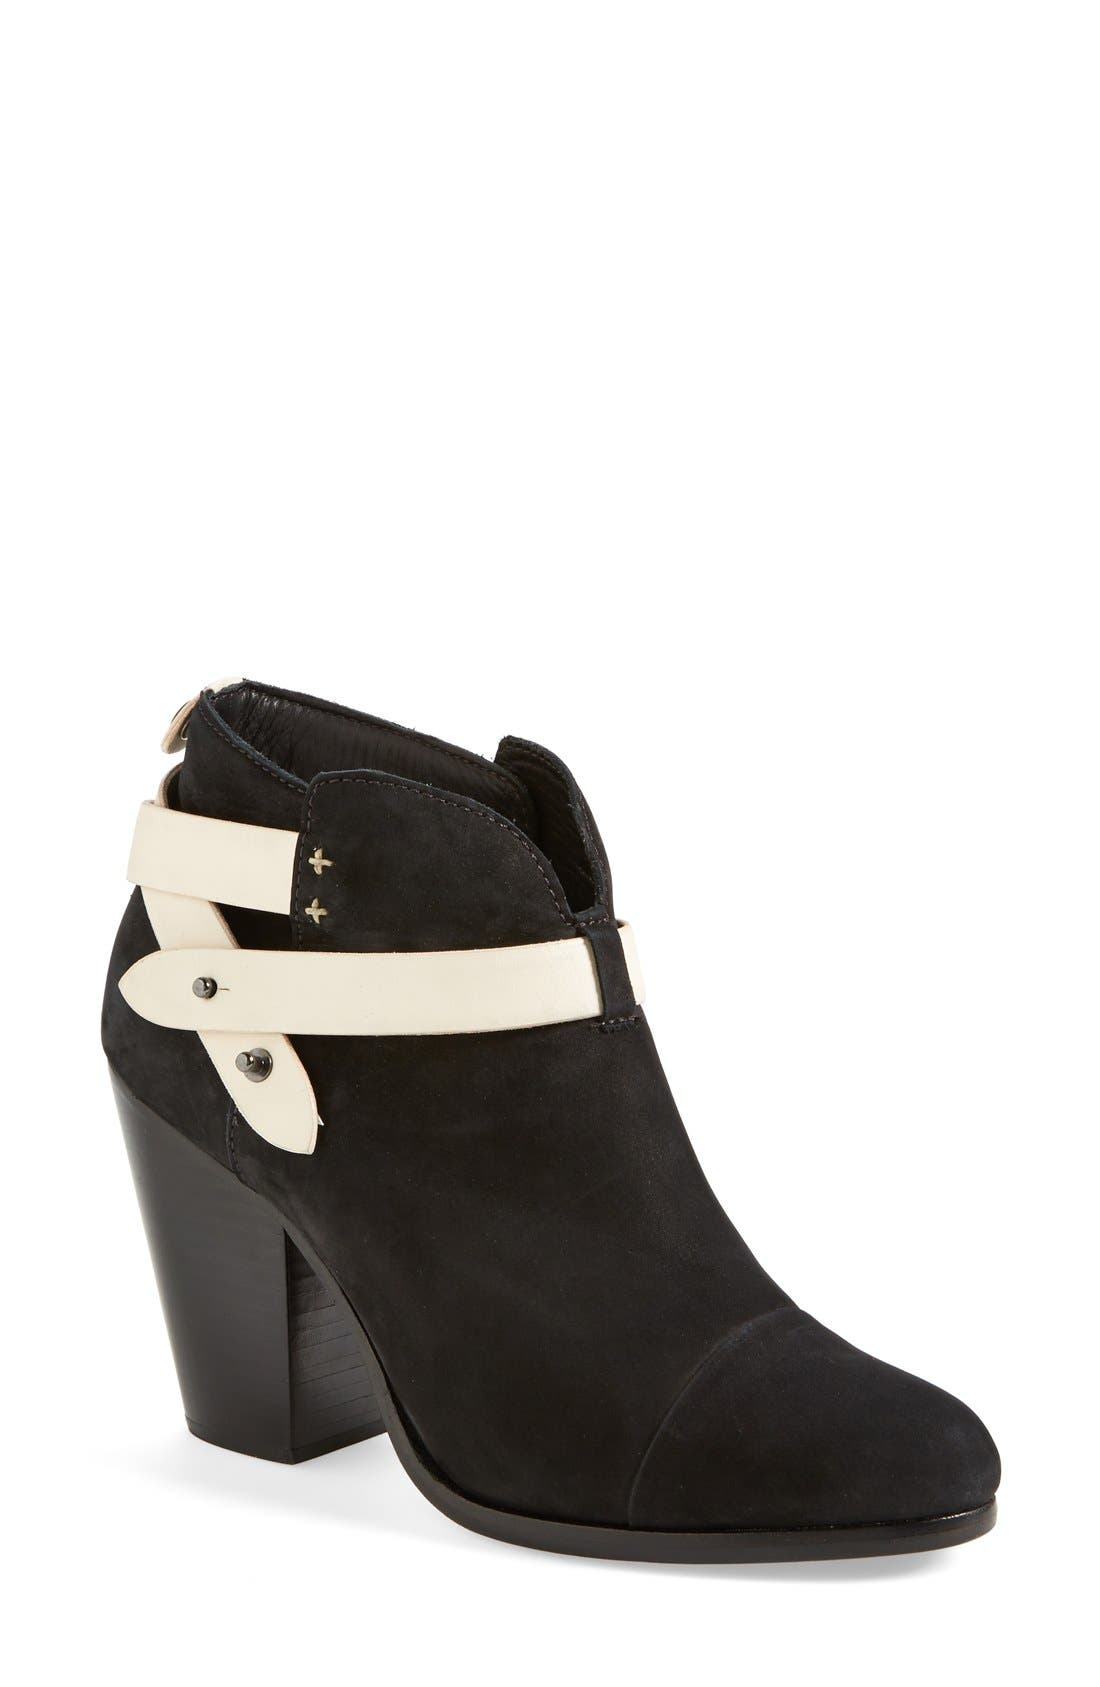 Main Image - rag & bone 'Harrow' Bootie (Women)